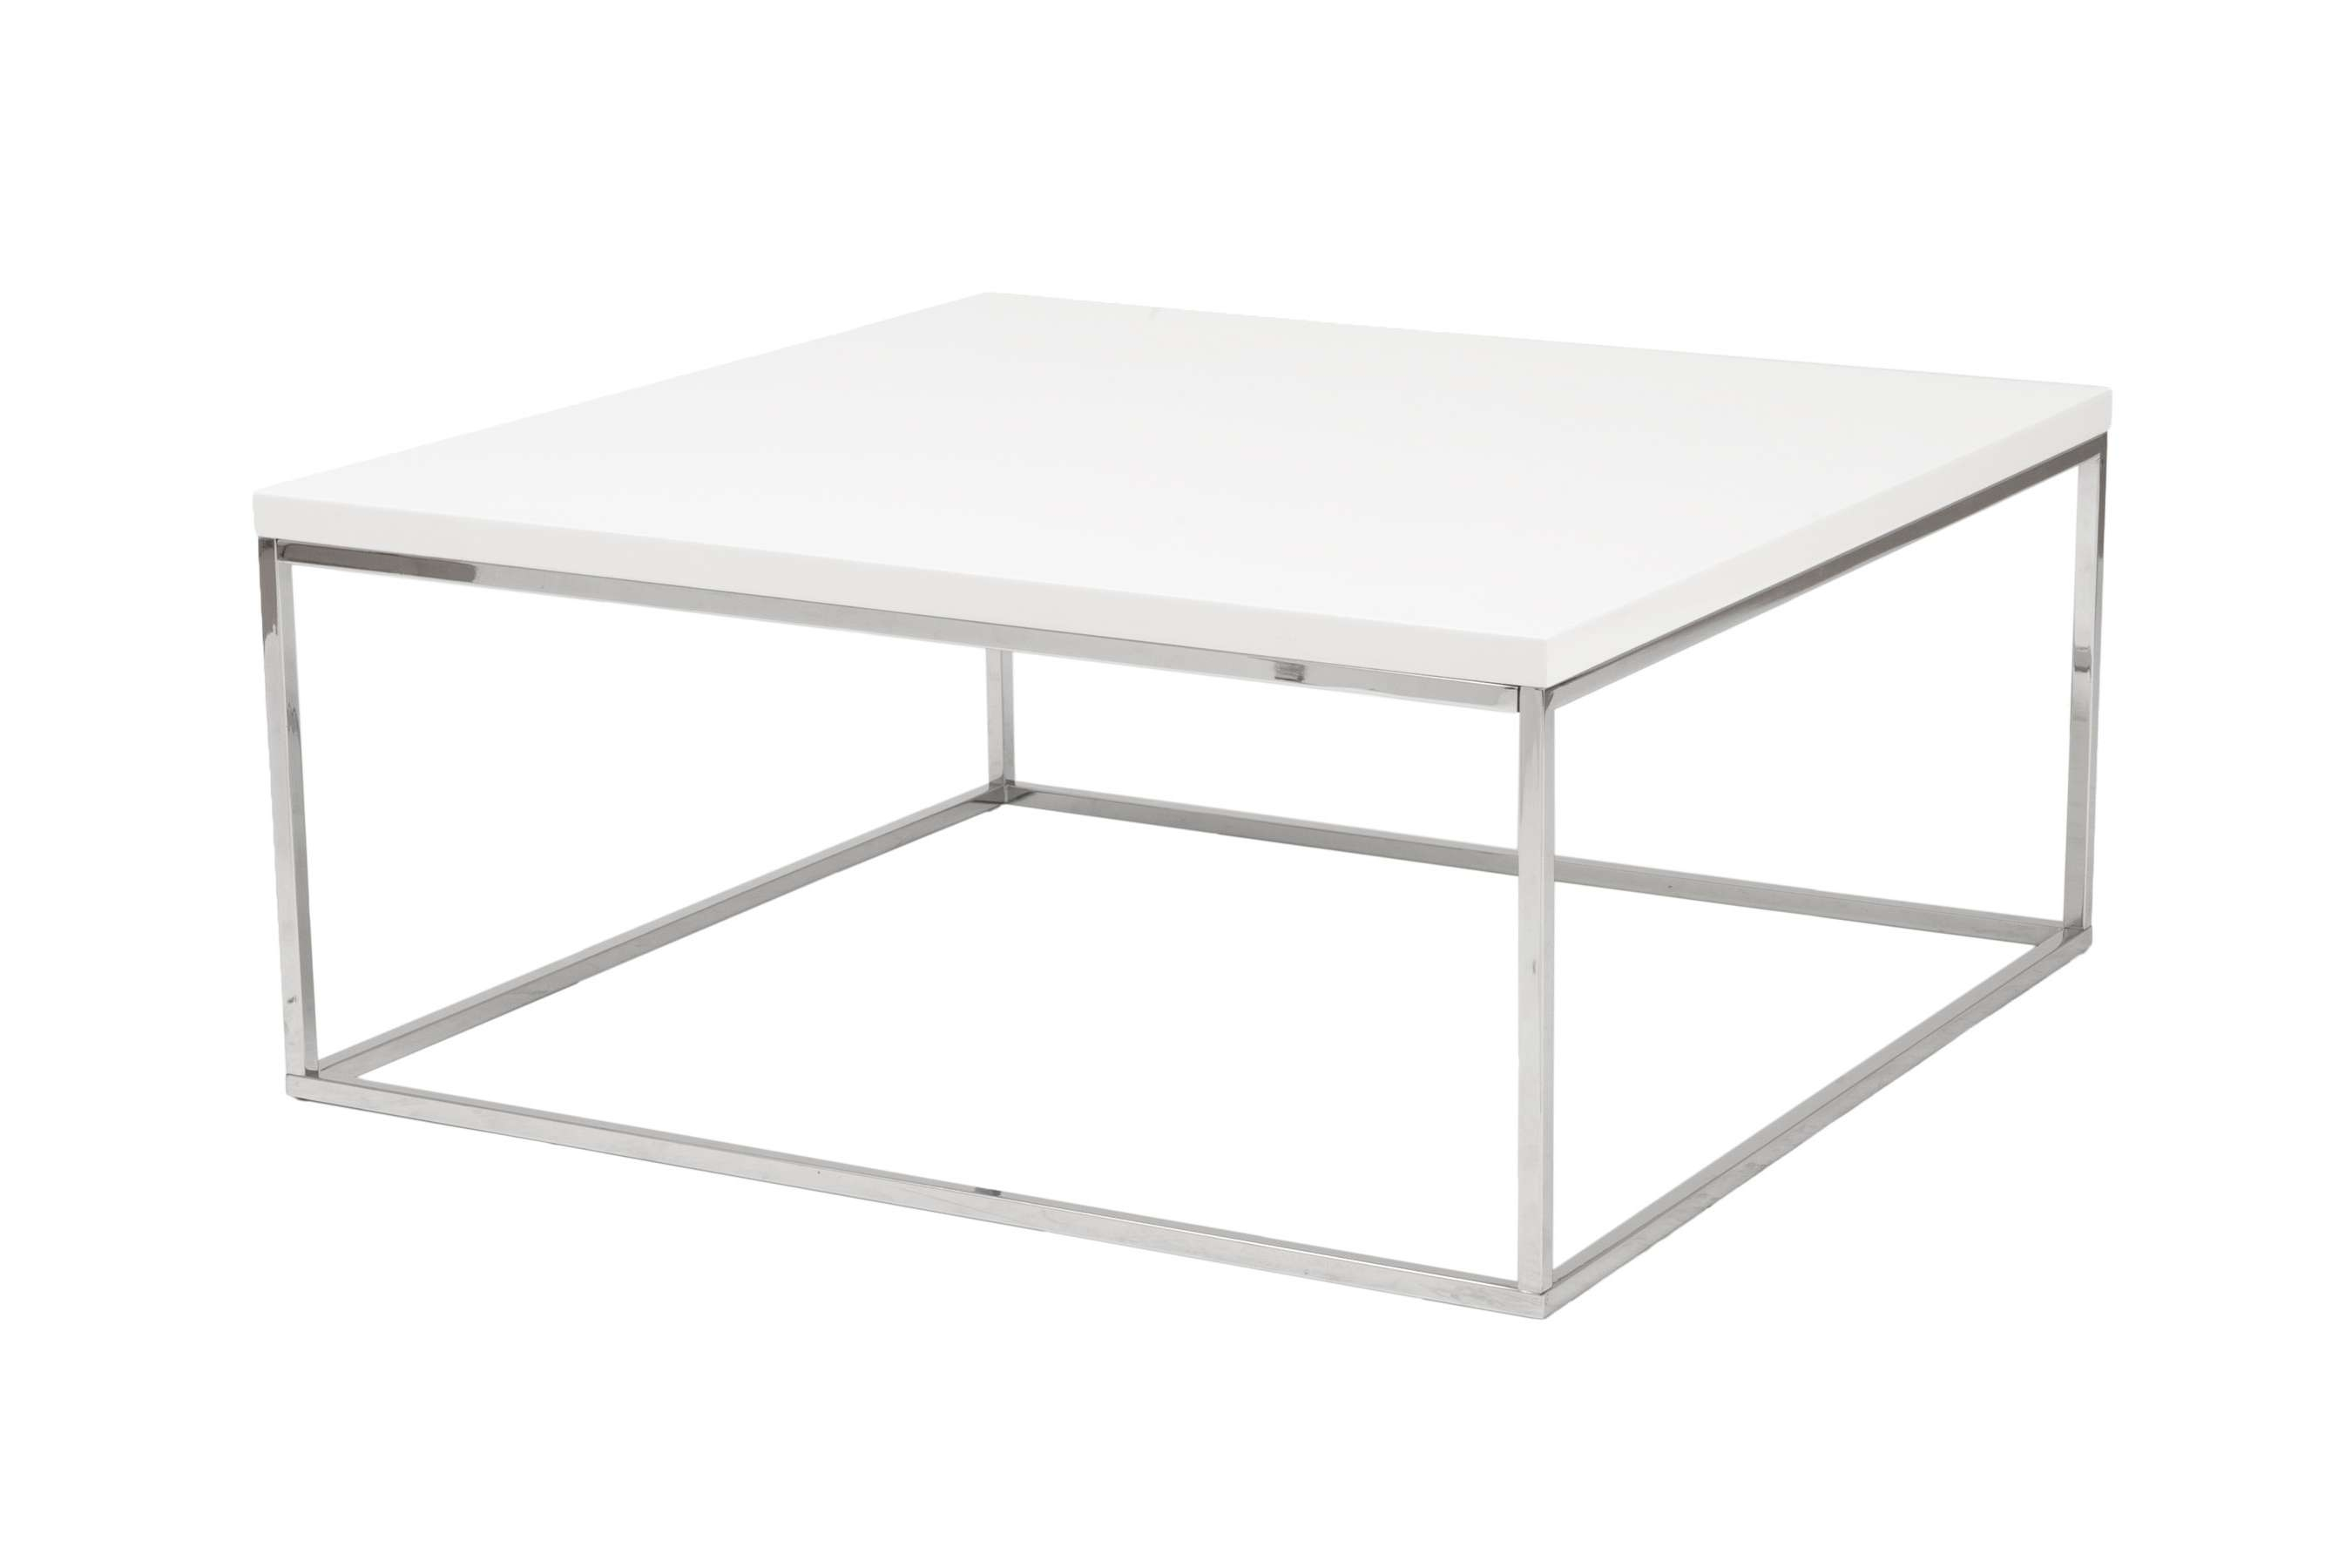 Widely Used Metal Square Coffee Tables Intended For Coffee Tables : Tables Online Modern Coffee Table Square Glass (View 2 of 20)